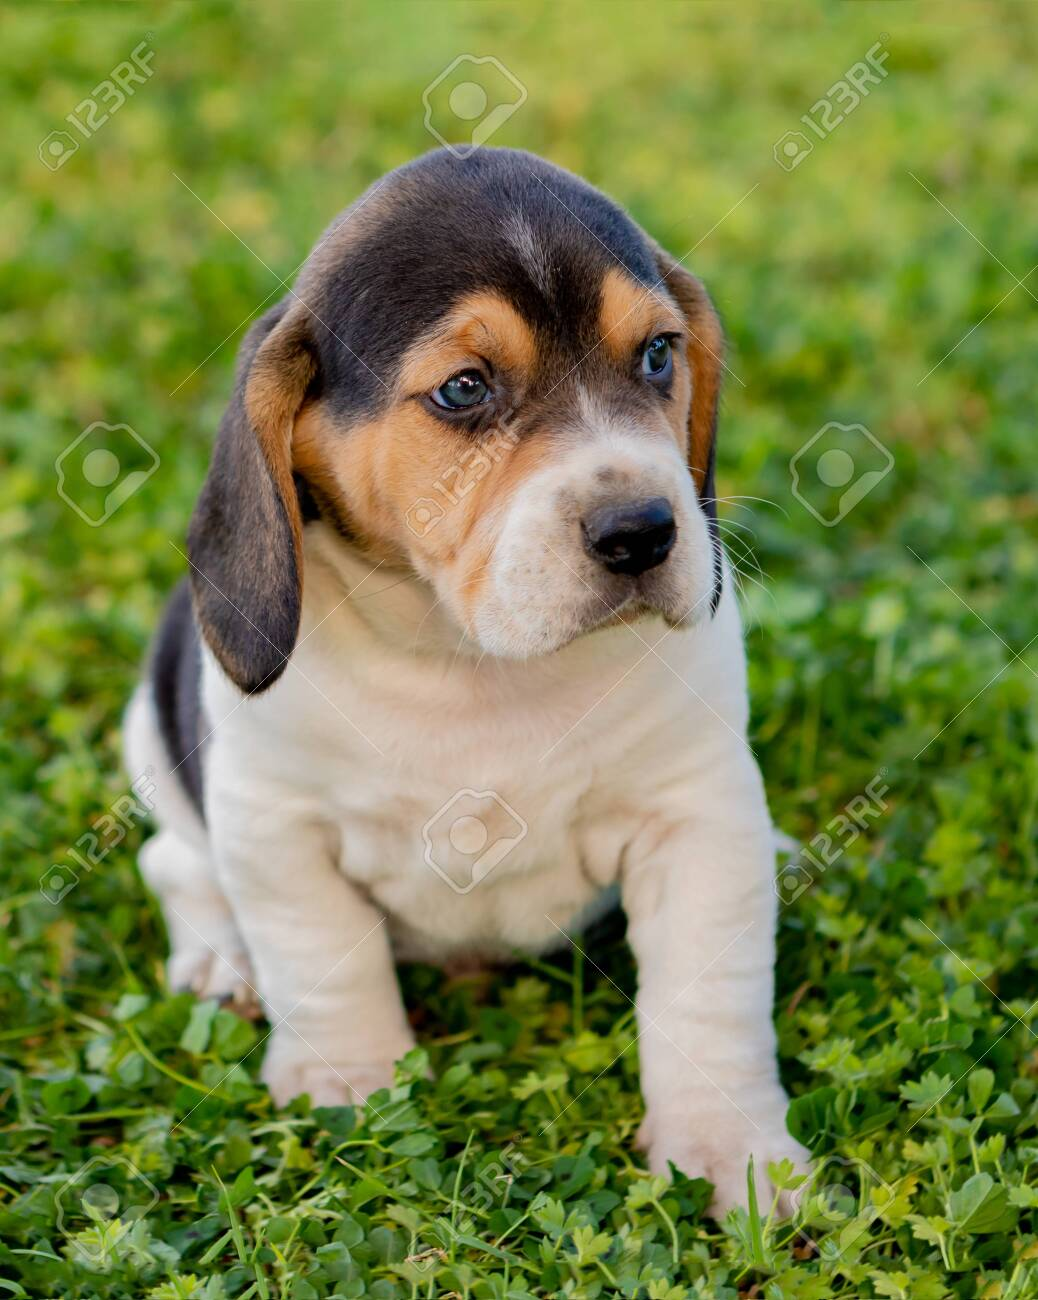 Beautiful Beagle Puppy Brown And Black On The Green Grass Stock Photo Picture And Royalty Free Image Image 120817883